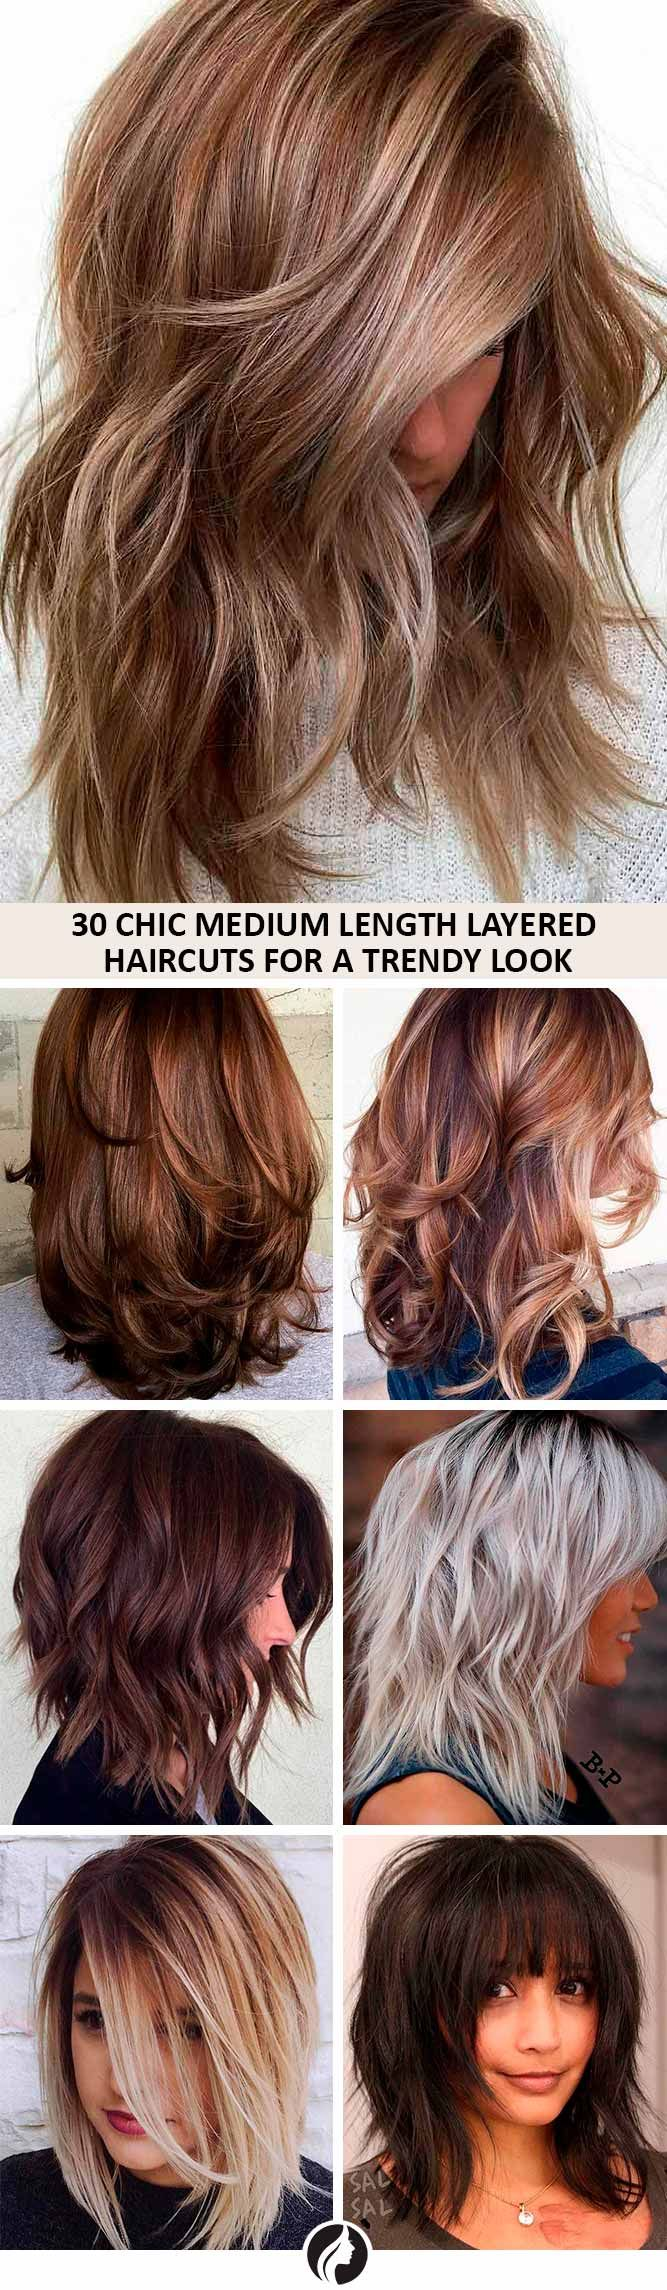 Todays Hairstyles For Medium Length Hair trendy styles